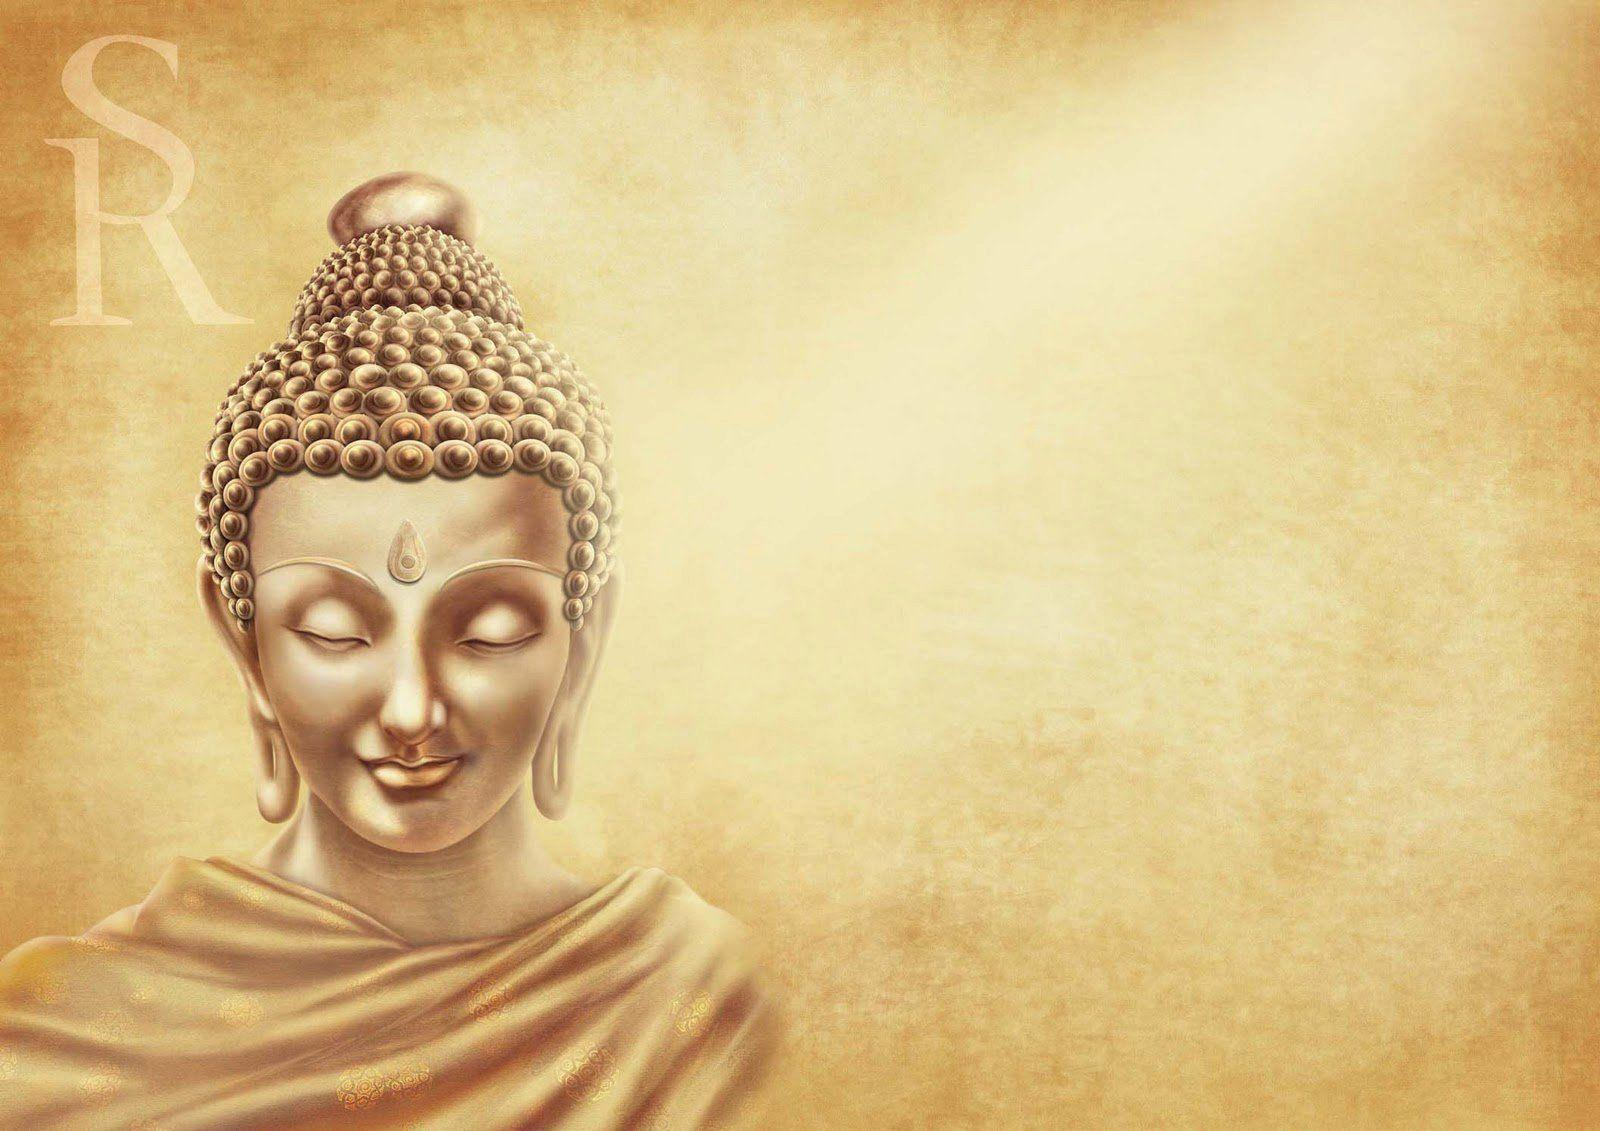 Buddhist Wallpapers - Wallpaper Cave